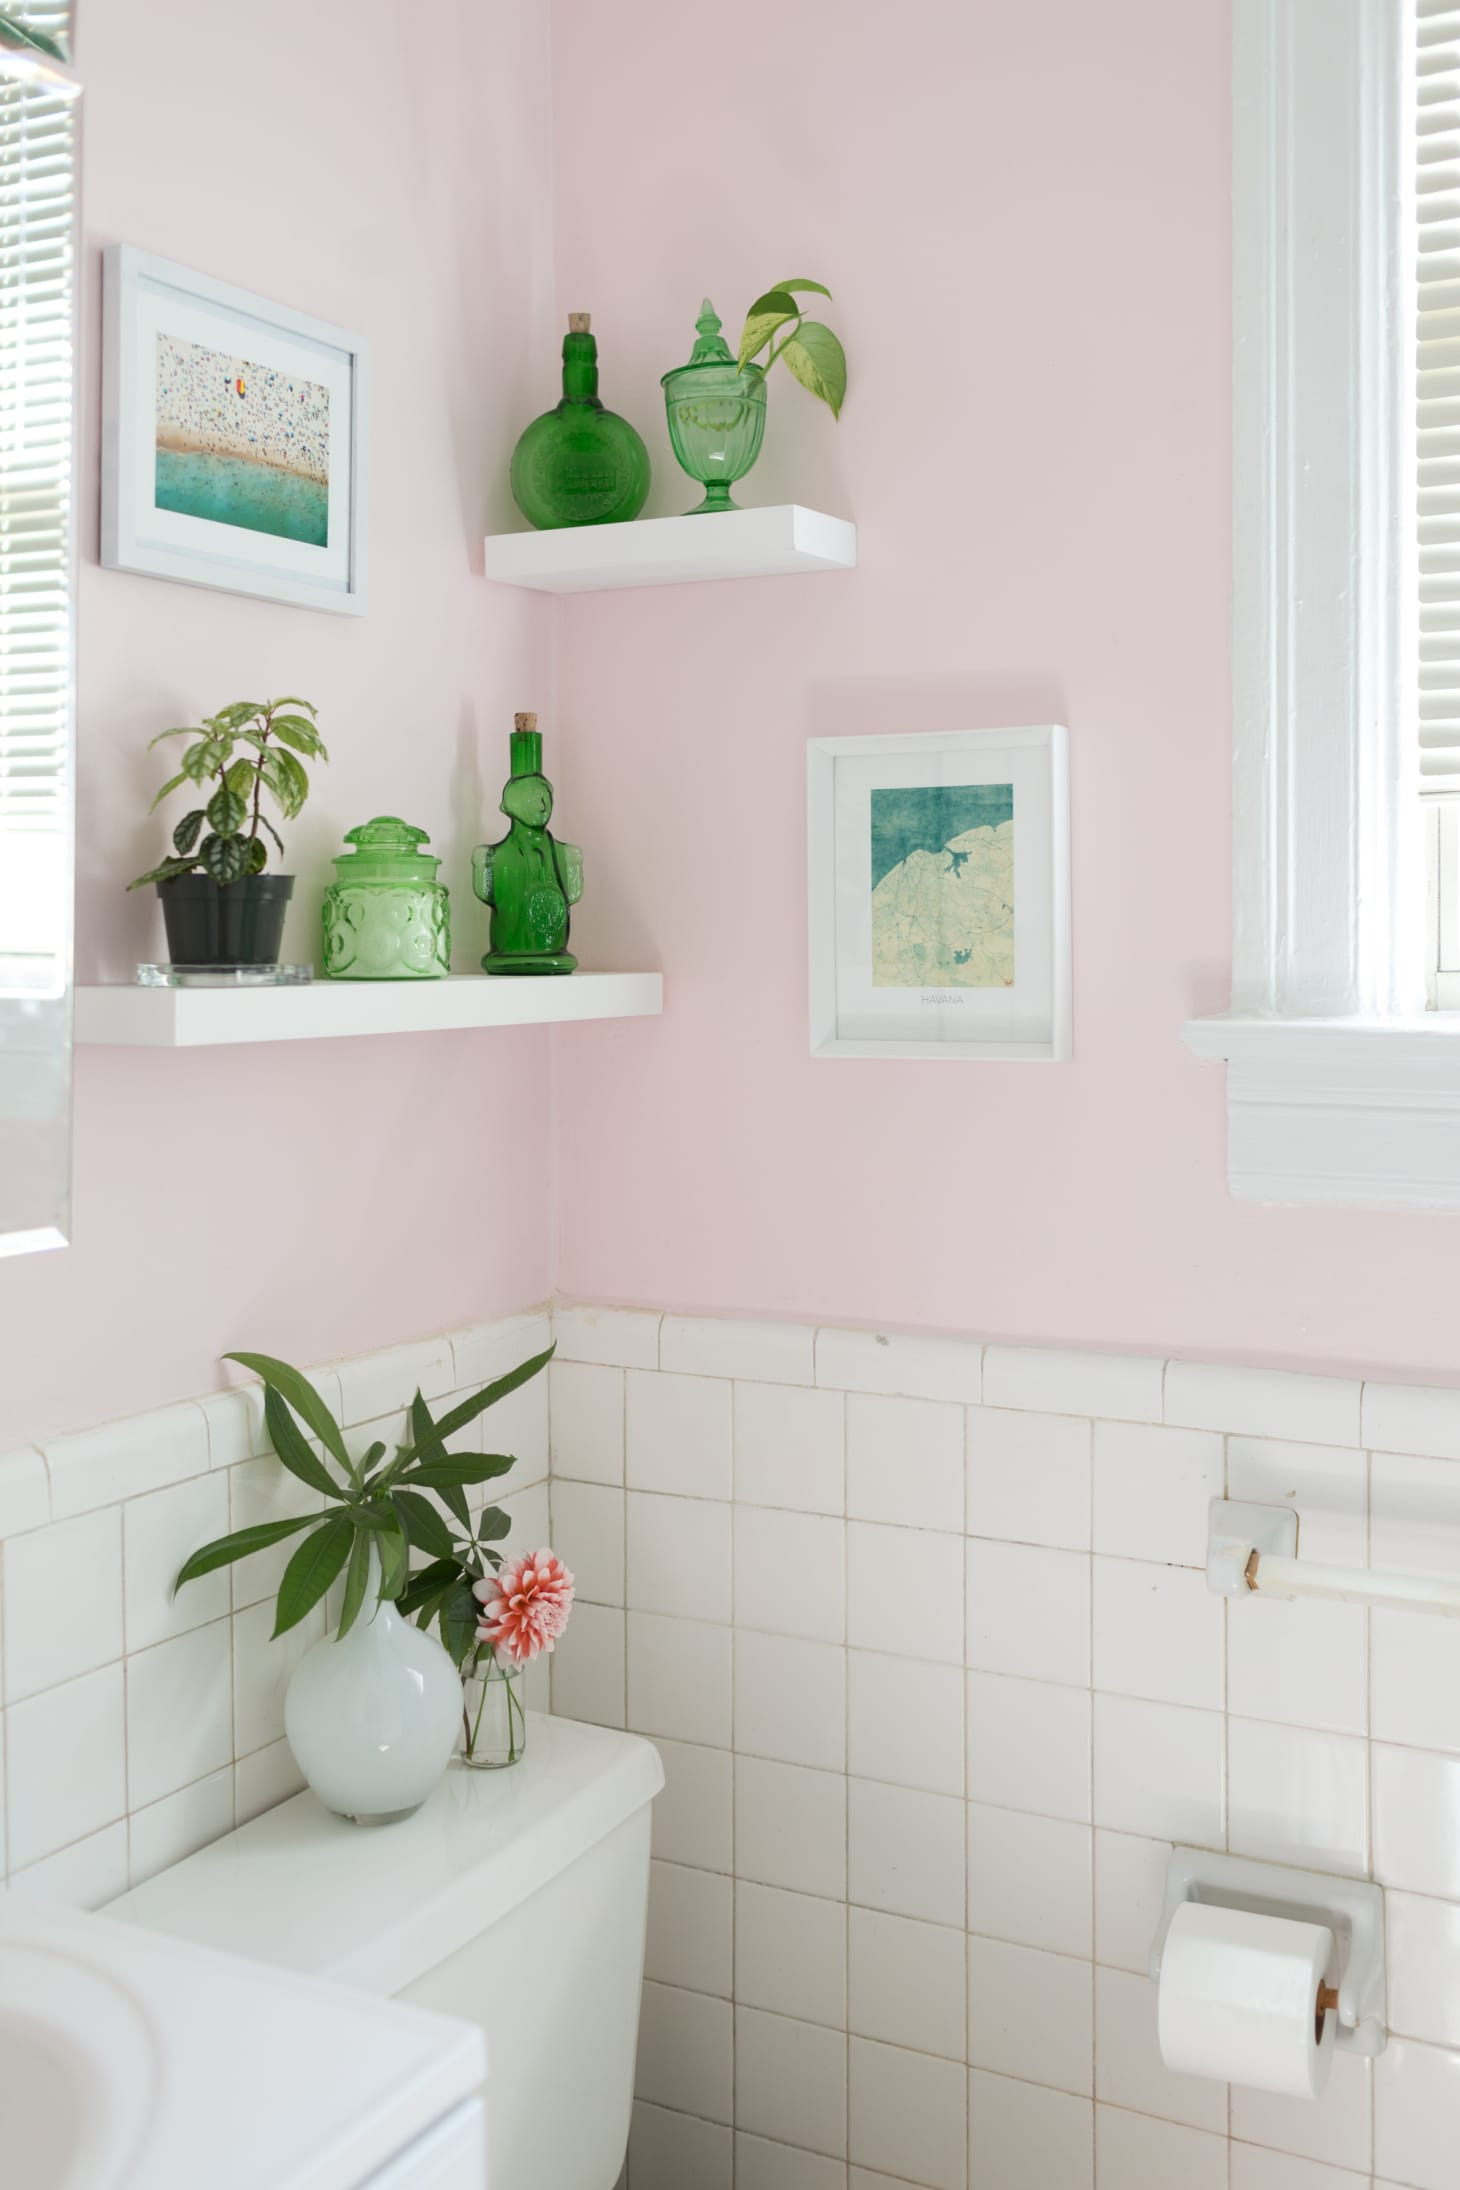 Decorating Ideas for Small Bathrooms Lovely 50 Best Small Bathroom Decorating Ideas Tiny Bathroom